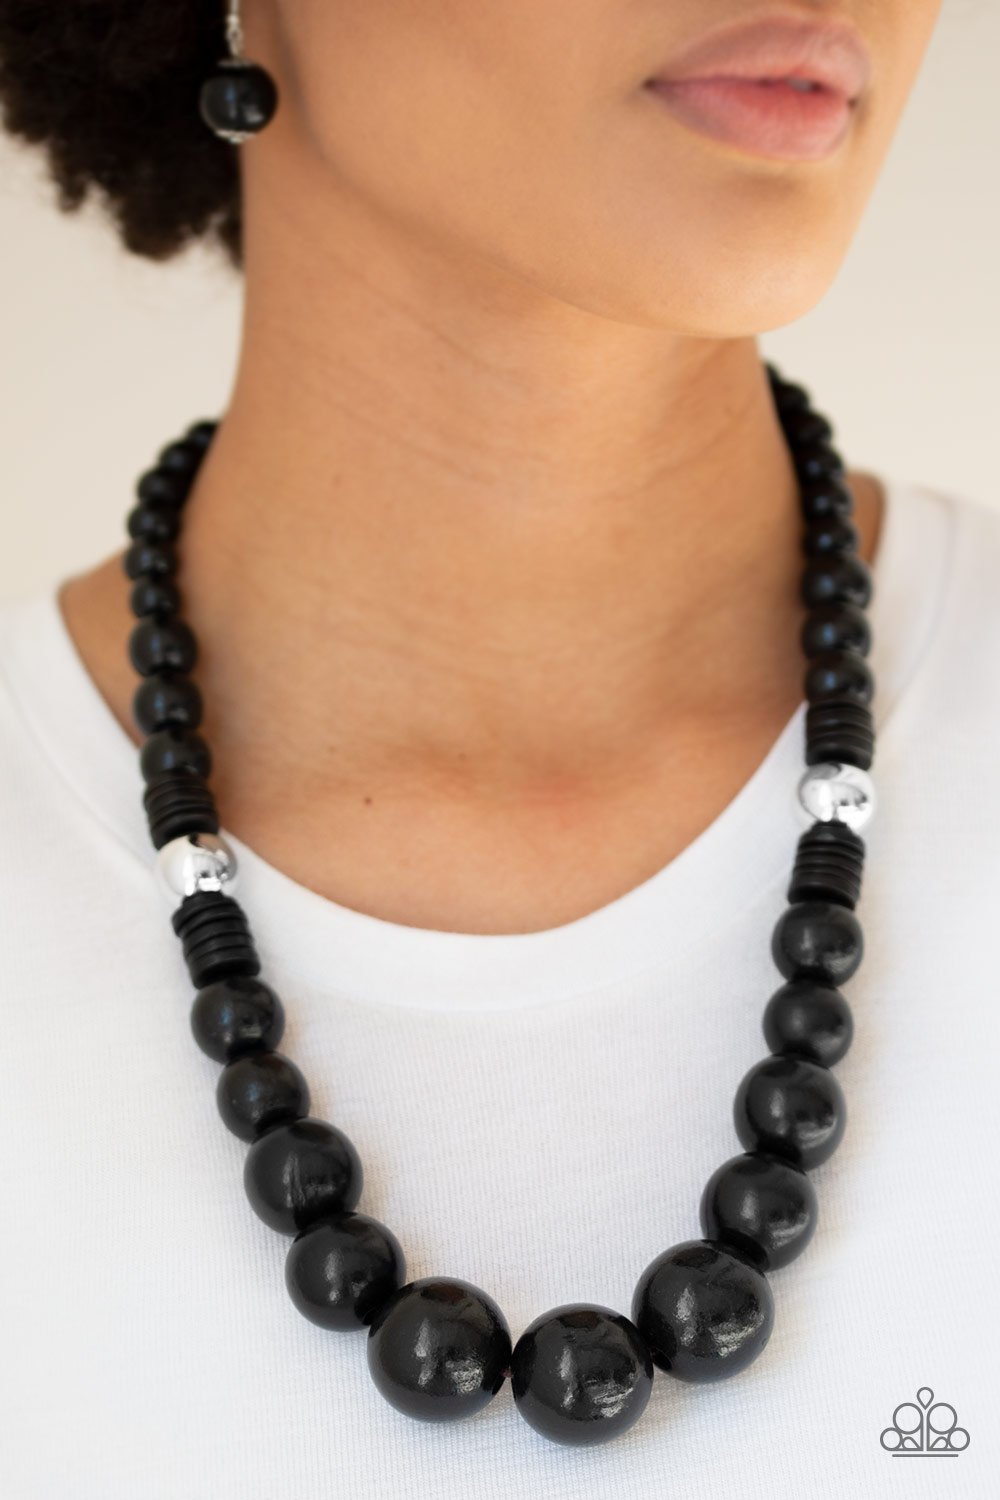 Panama Panorama - Black - Paparazzi Accessories - Pretty Girl Jewels